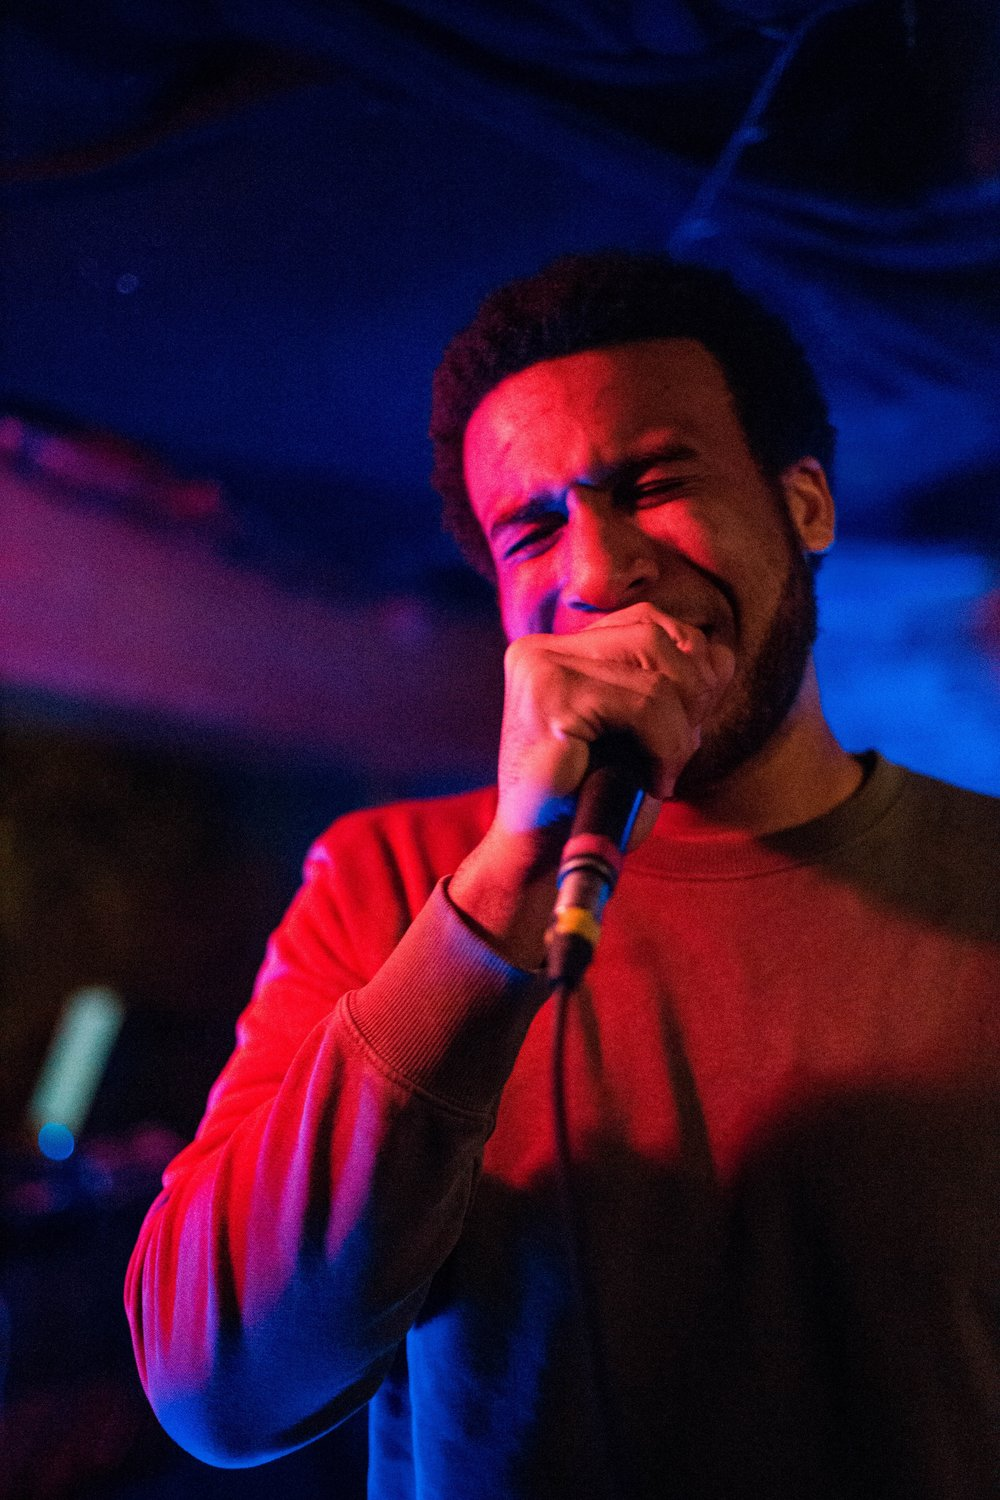 Core REX is a singer/producer based in Chicago, IL. Heavily-influenced by the likes of Flying Lotus & James Brown, Core REX produces his unique sound with the use of floaty, synthetic instruments and often times many layers of vocals to create a sound that is specific and natural to him.